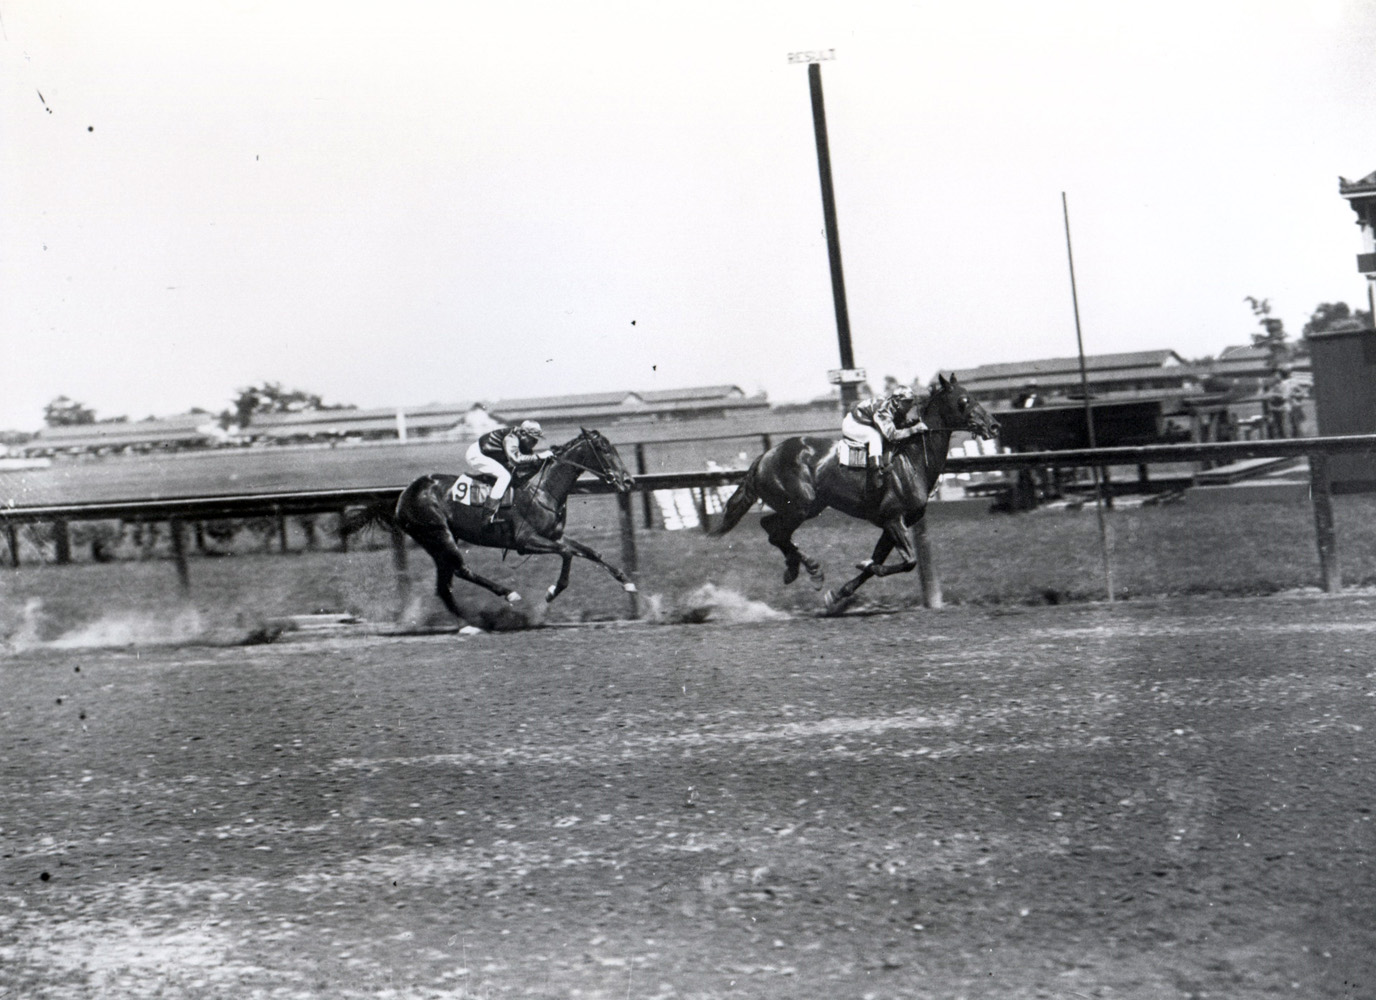 Joe Notter and Roseben winning the Sysonby Handicap at Sheepshead Bay, June 1908 (Keeneland Library Cook Collection/Museum Collection)